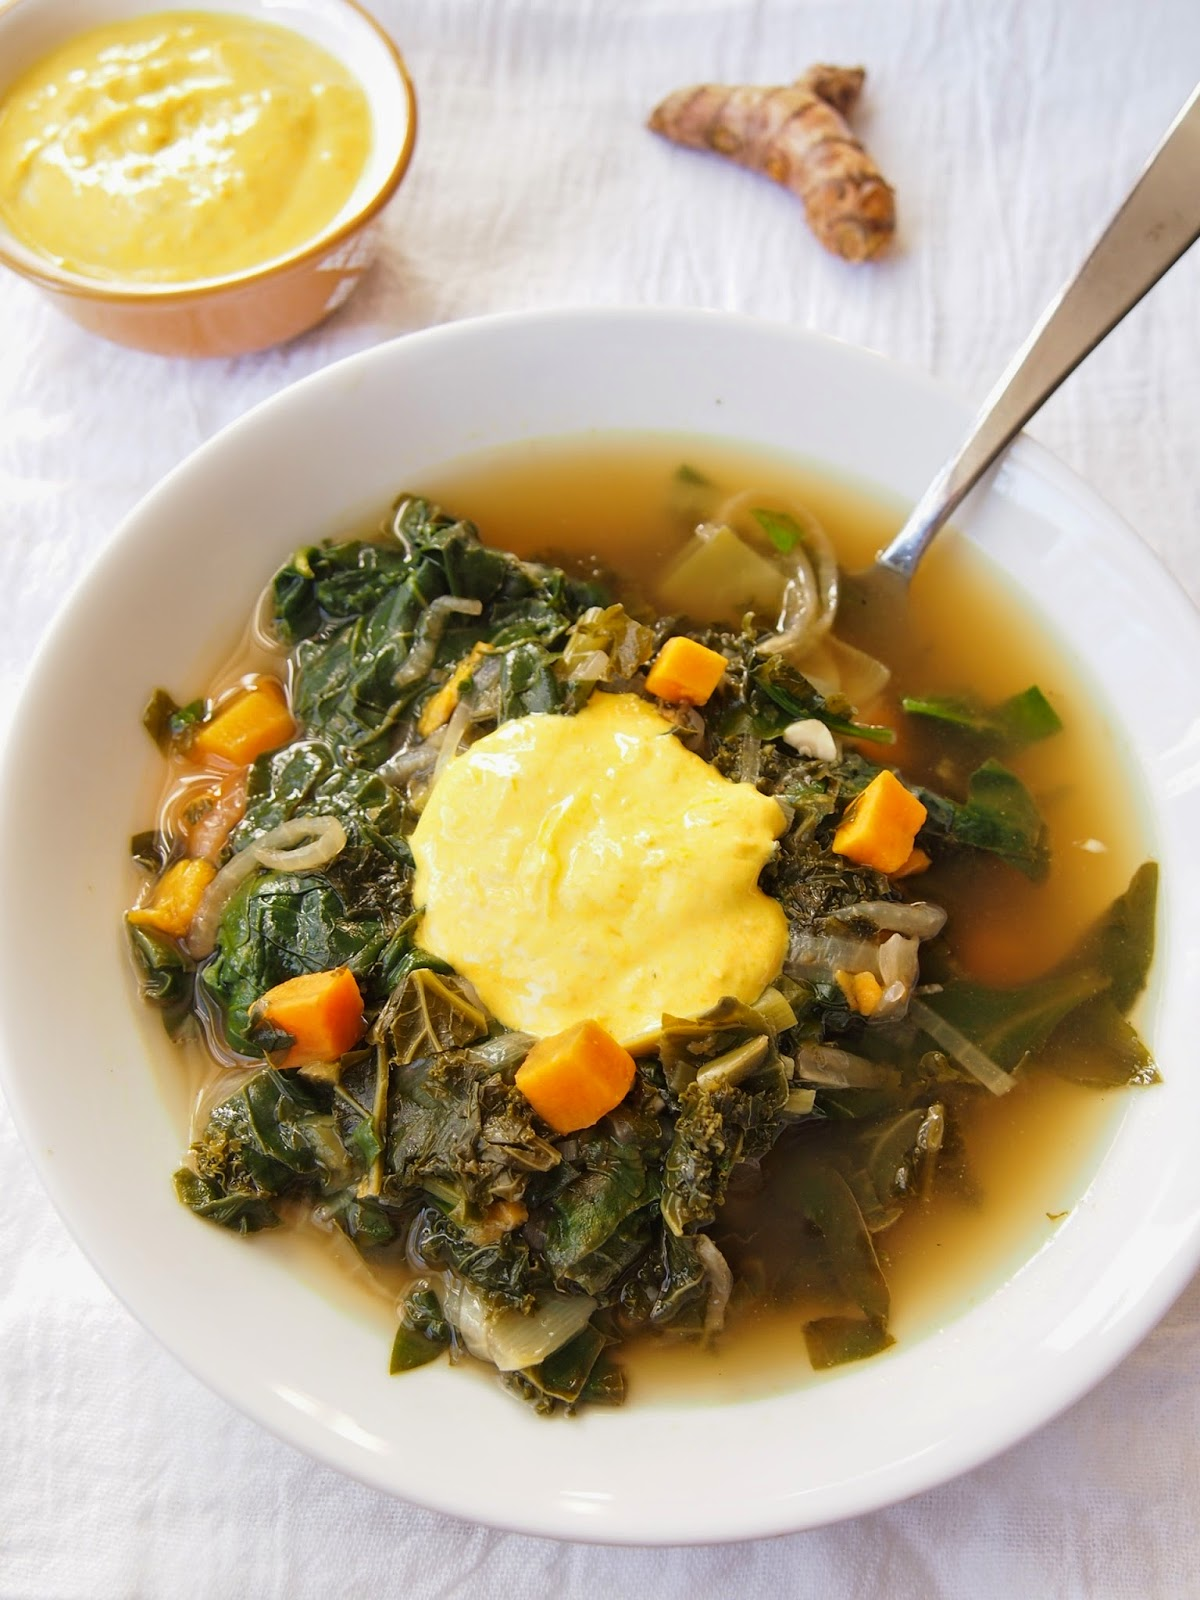 Immune Support Soup with Kale and Spinach